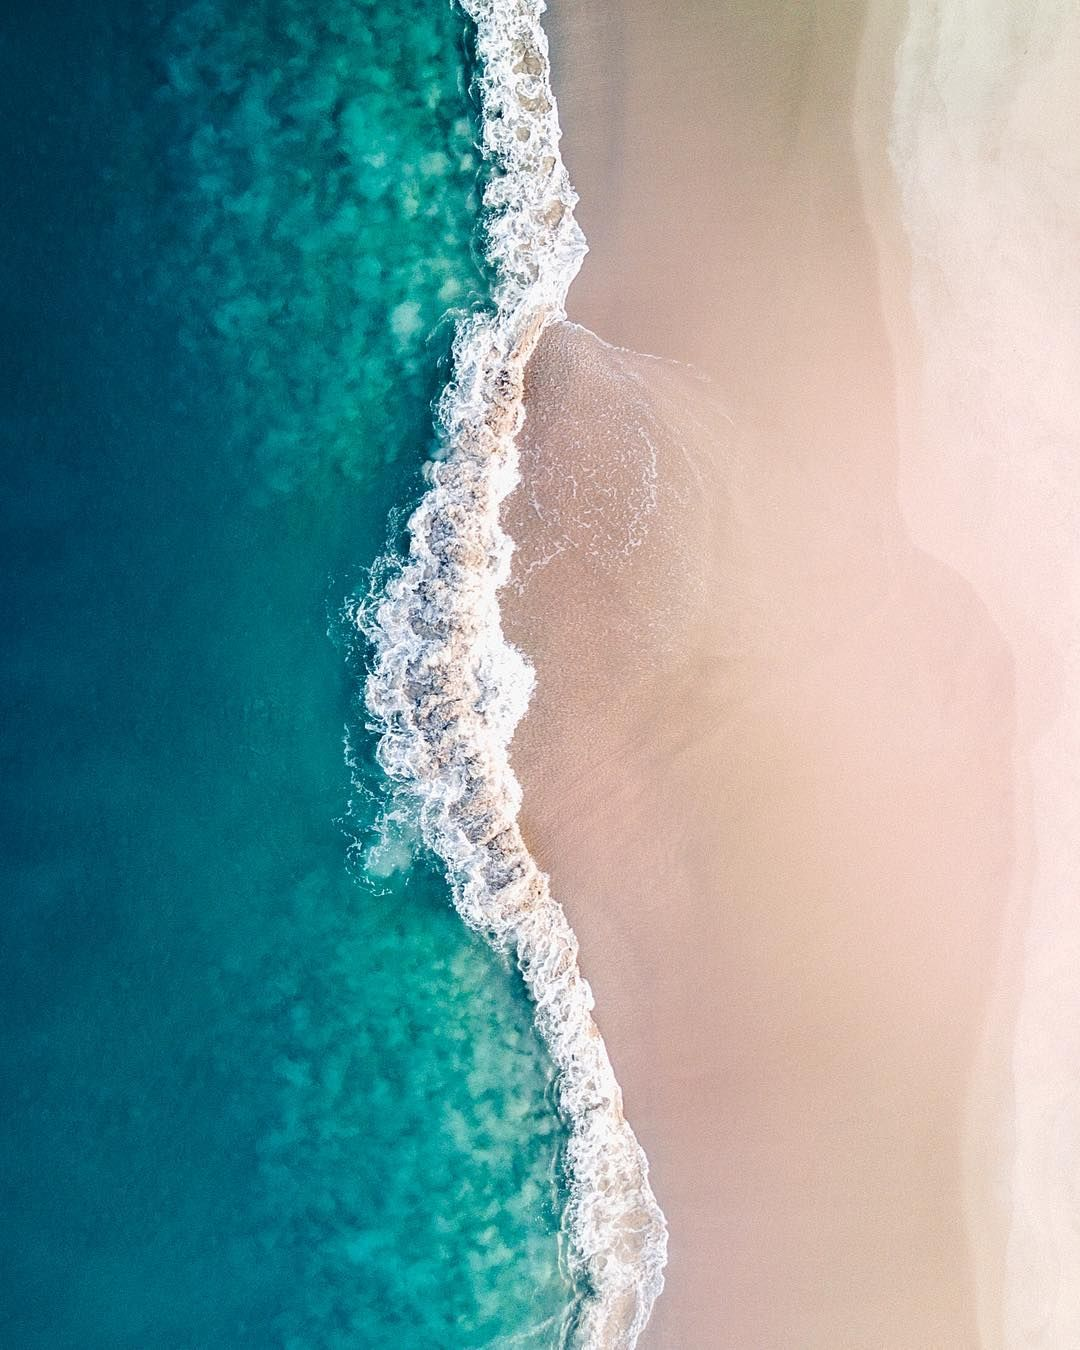 Pin On Ocean Photography